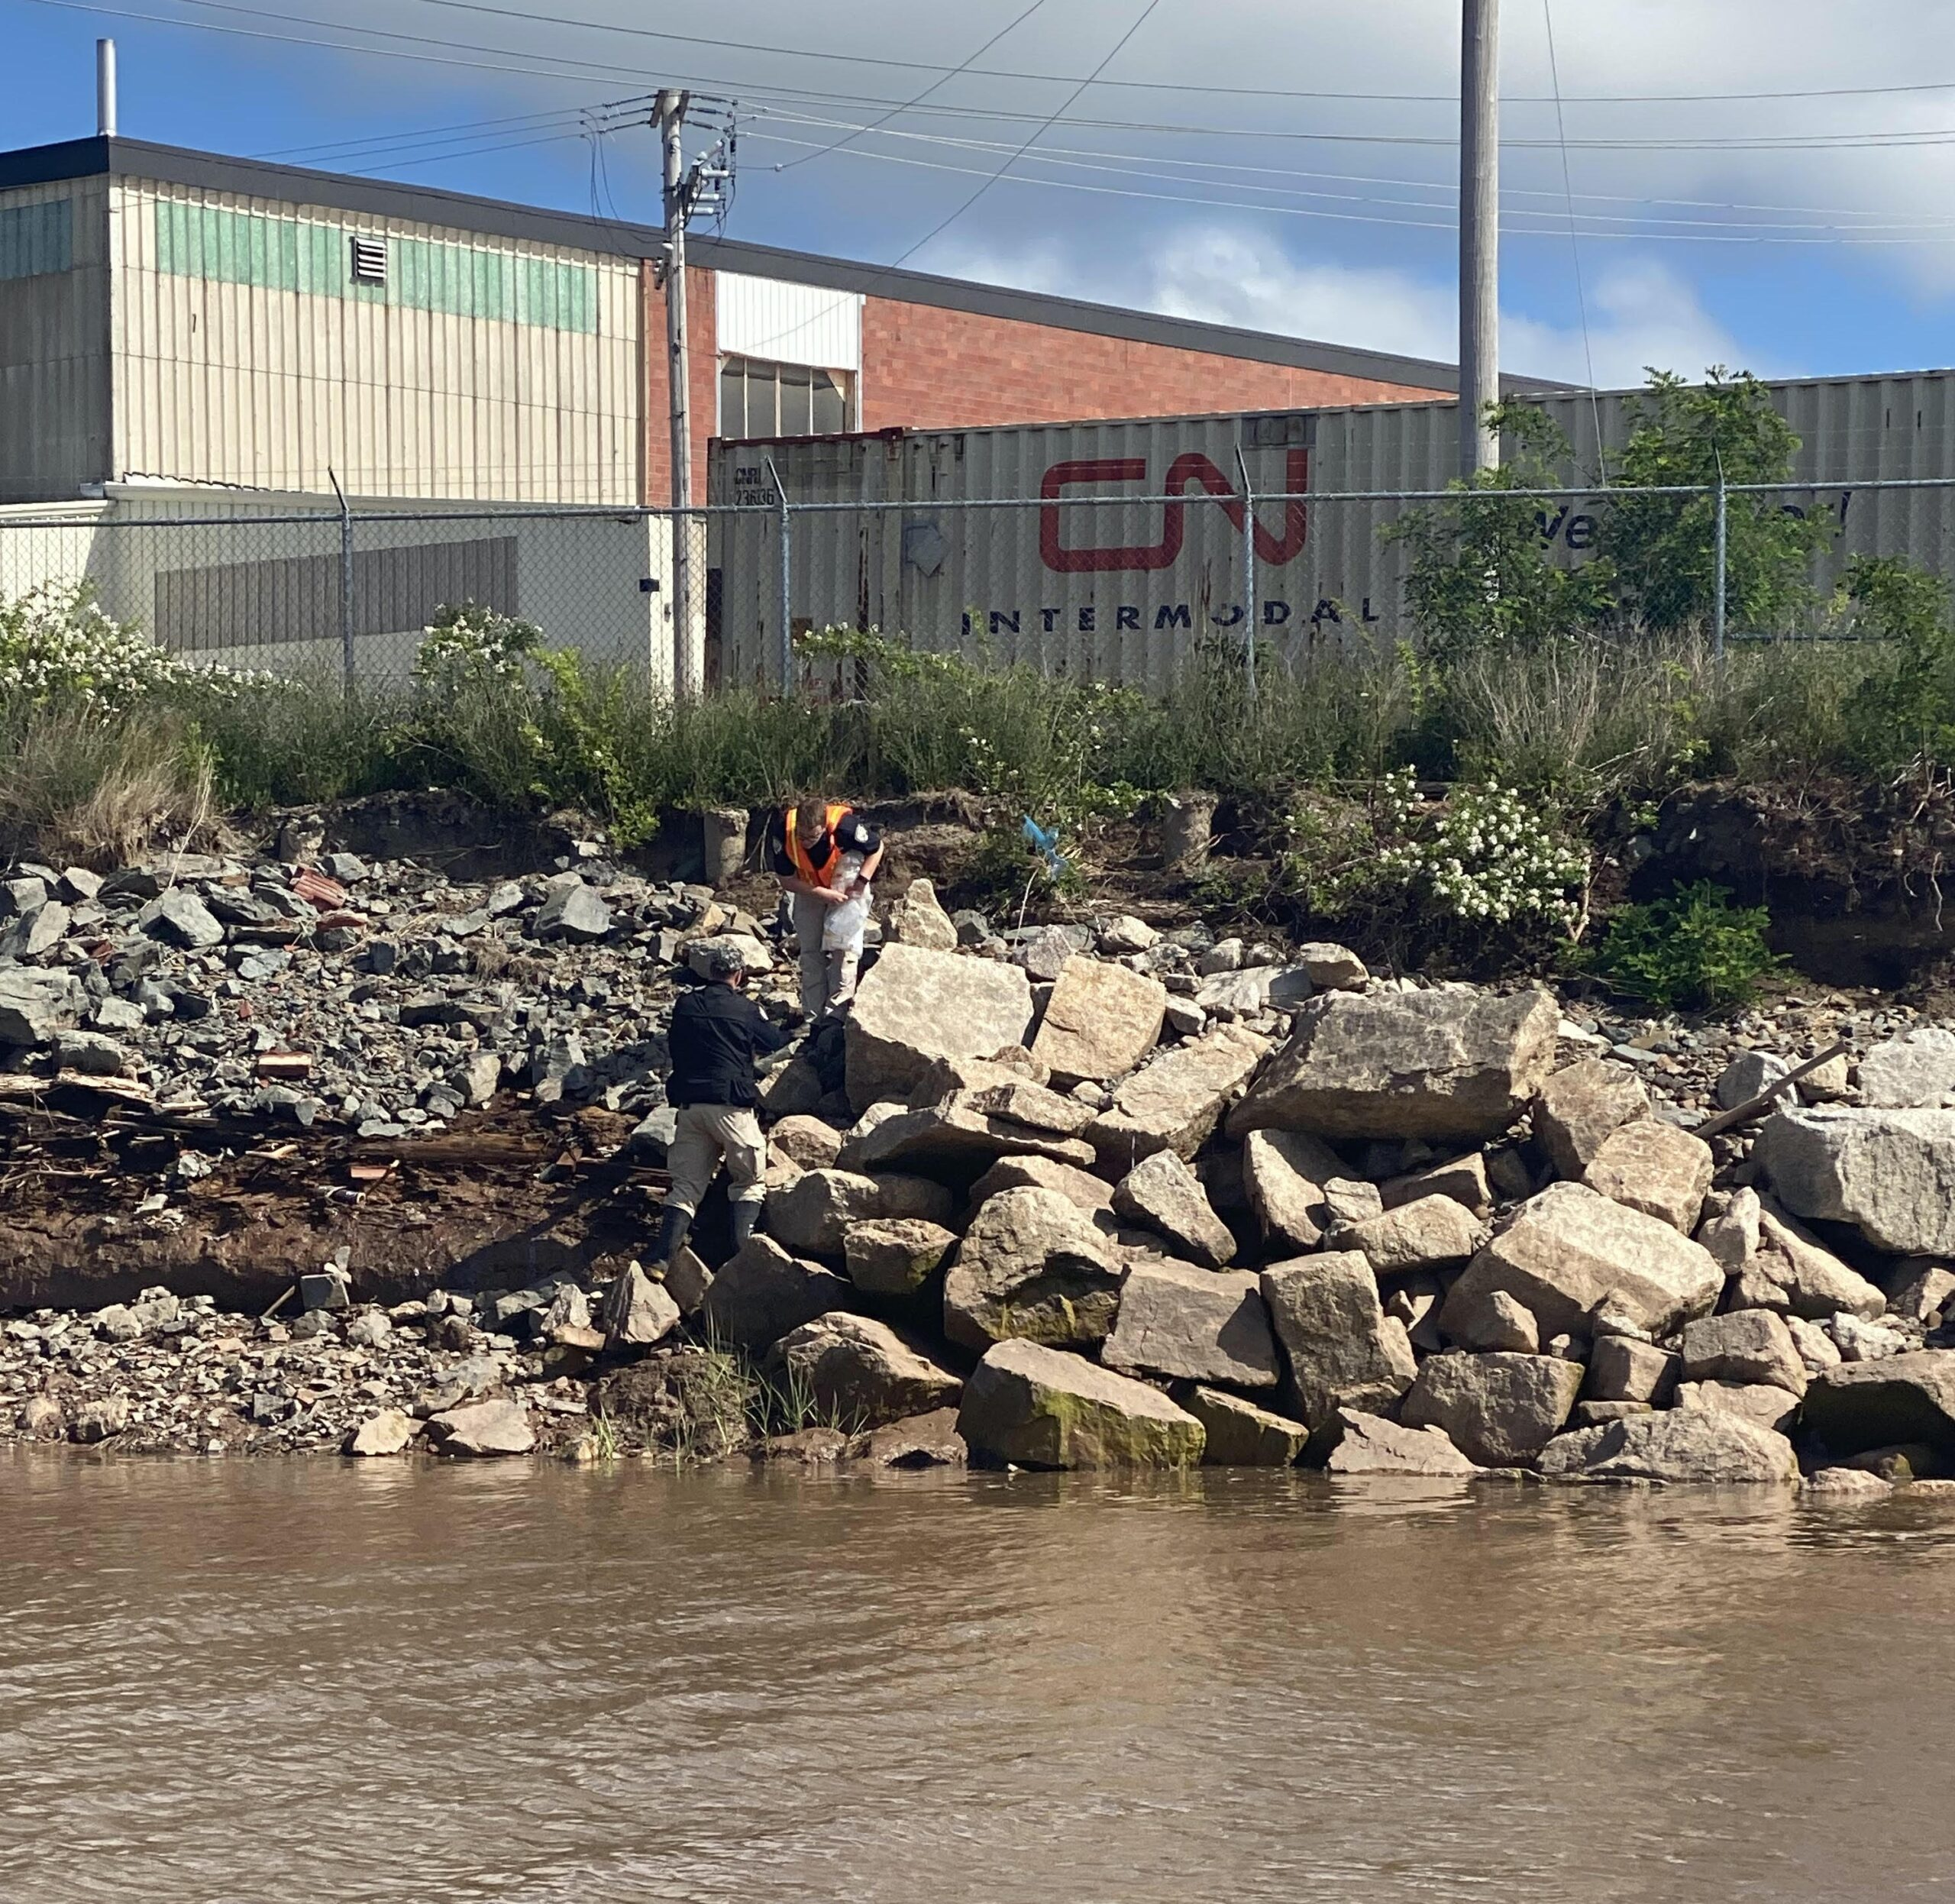 Water, pile of rocks, CN railcar, and building in background.